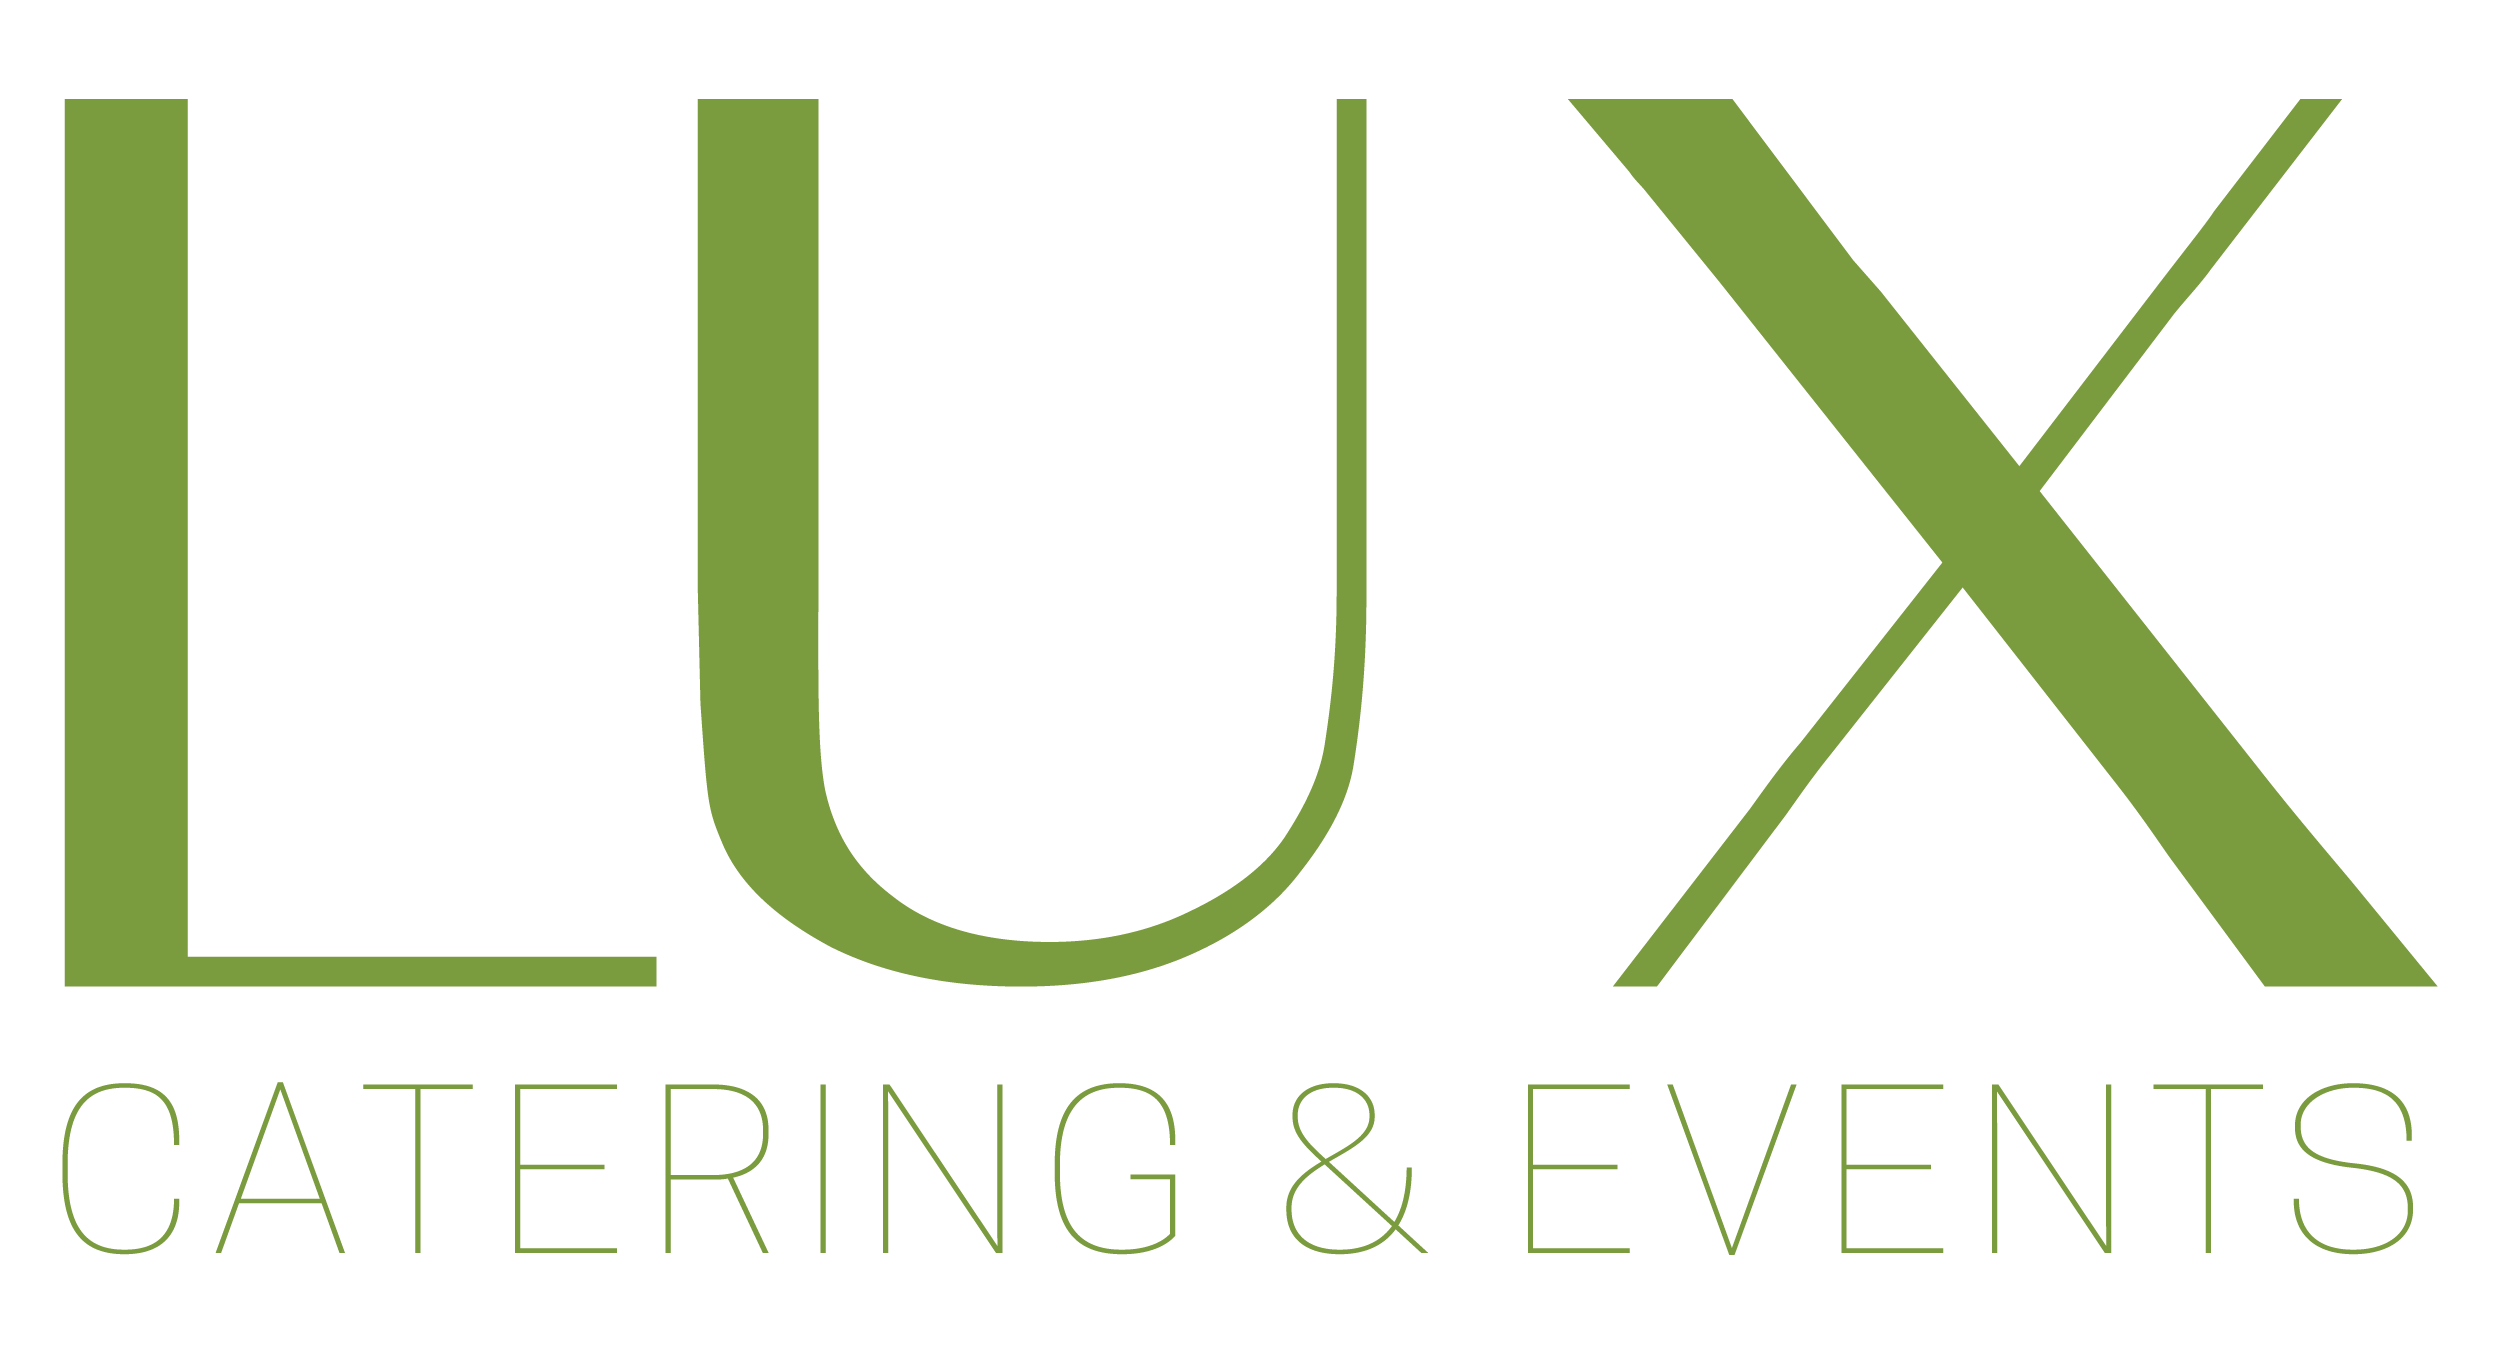 Lux Catering & Events.png